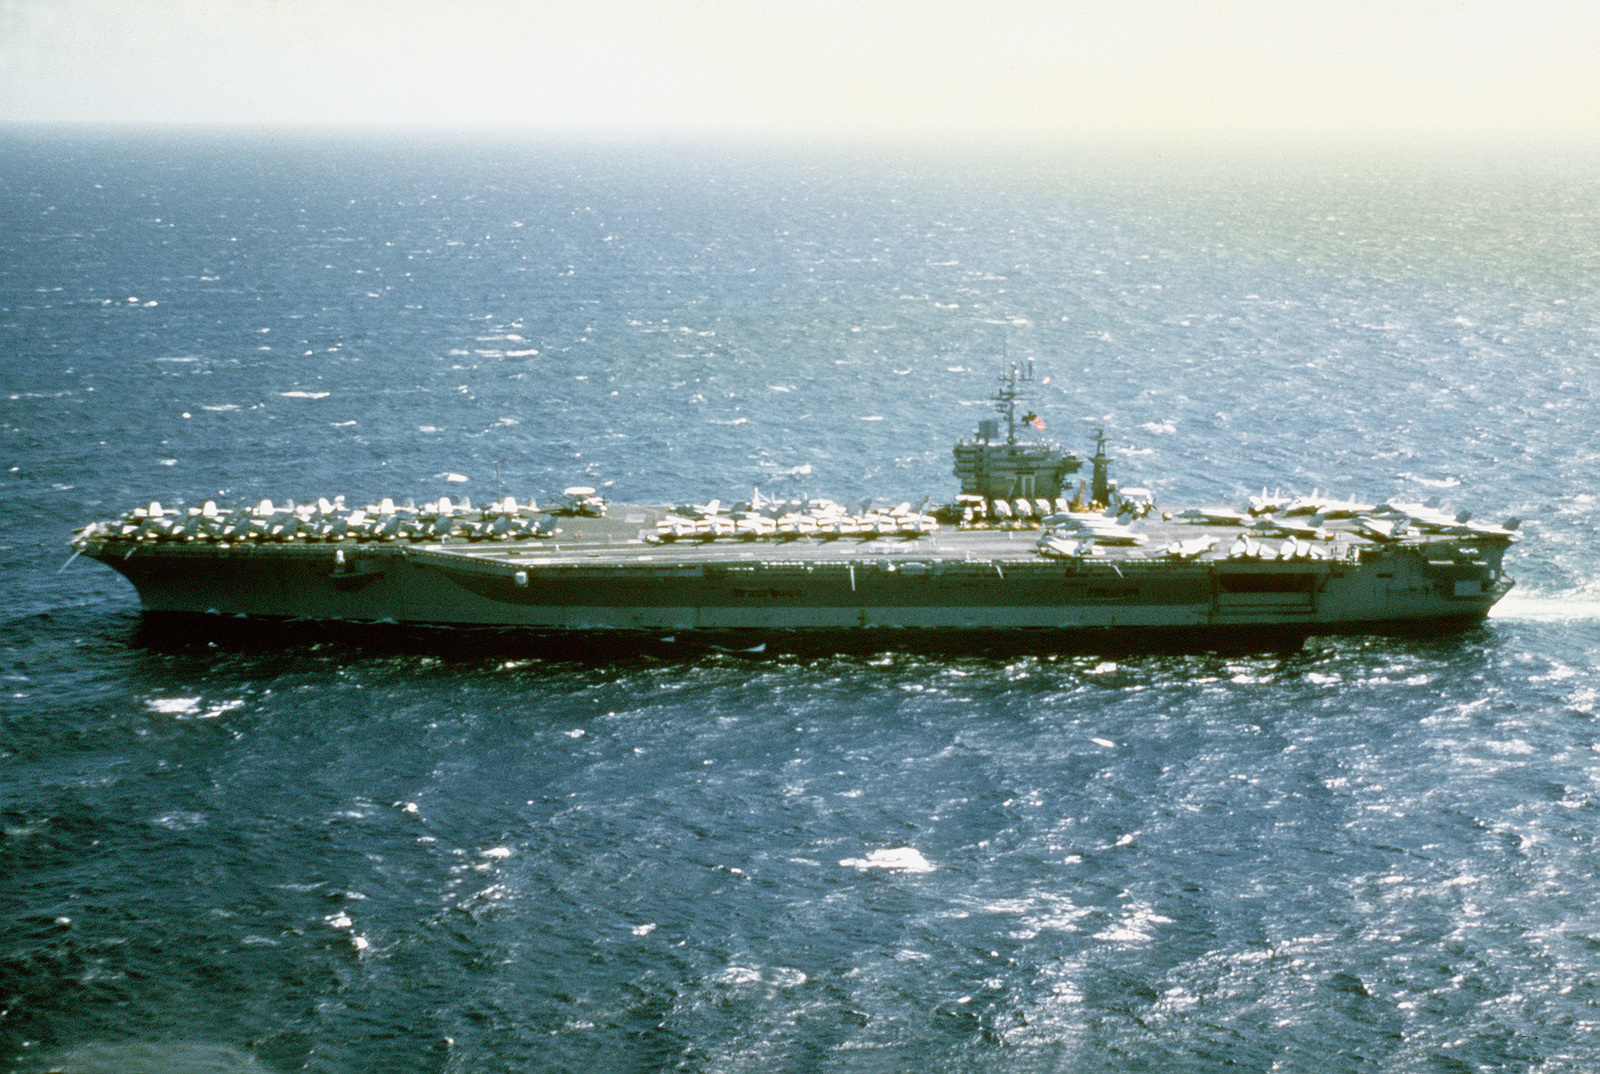 Aerial port beam view of the nuclear-powered aircraft carrier USS CARL VINSON (CVN-70) approaching Pearl Harbor, Hawaii